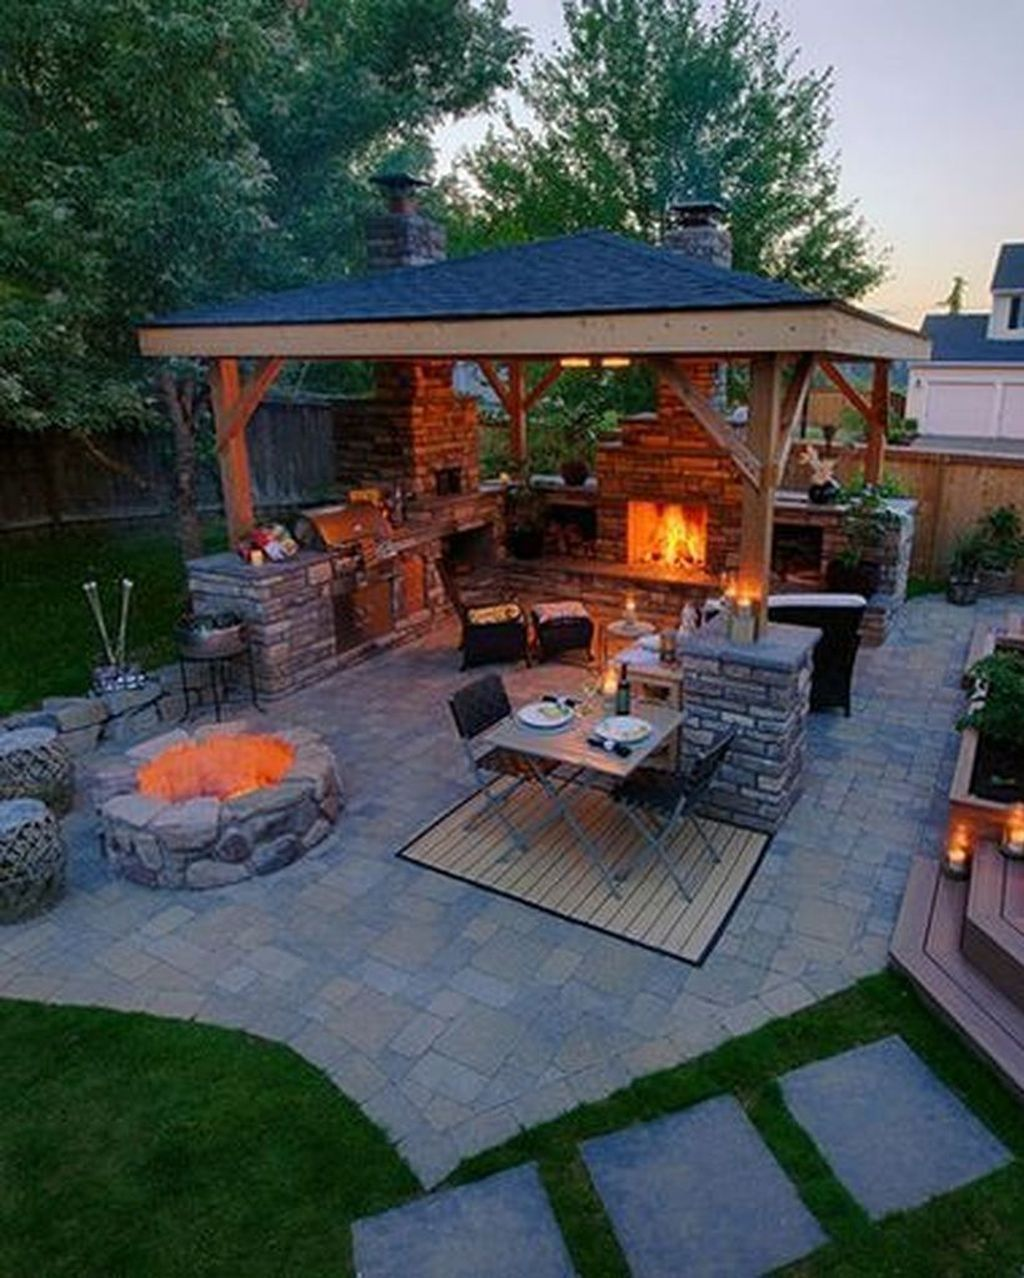 35 Fancy Outdoor Kitchens Design Ideas That You Need To Know In 2020 Backyard Patio Designs Outdoor Kitchen Design Patio Design